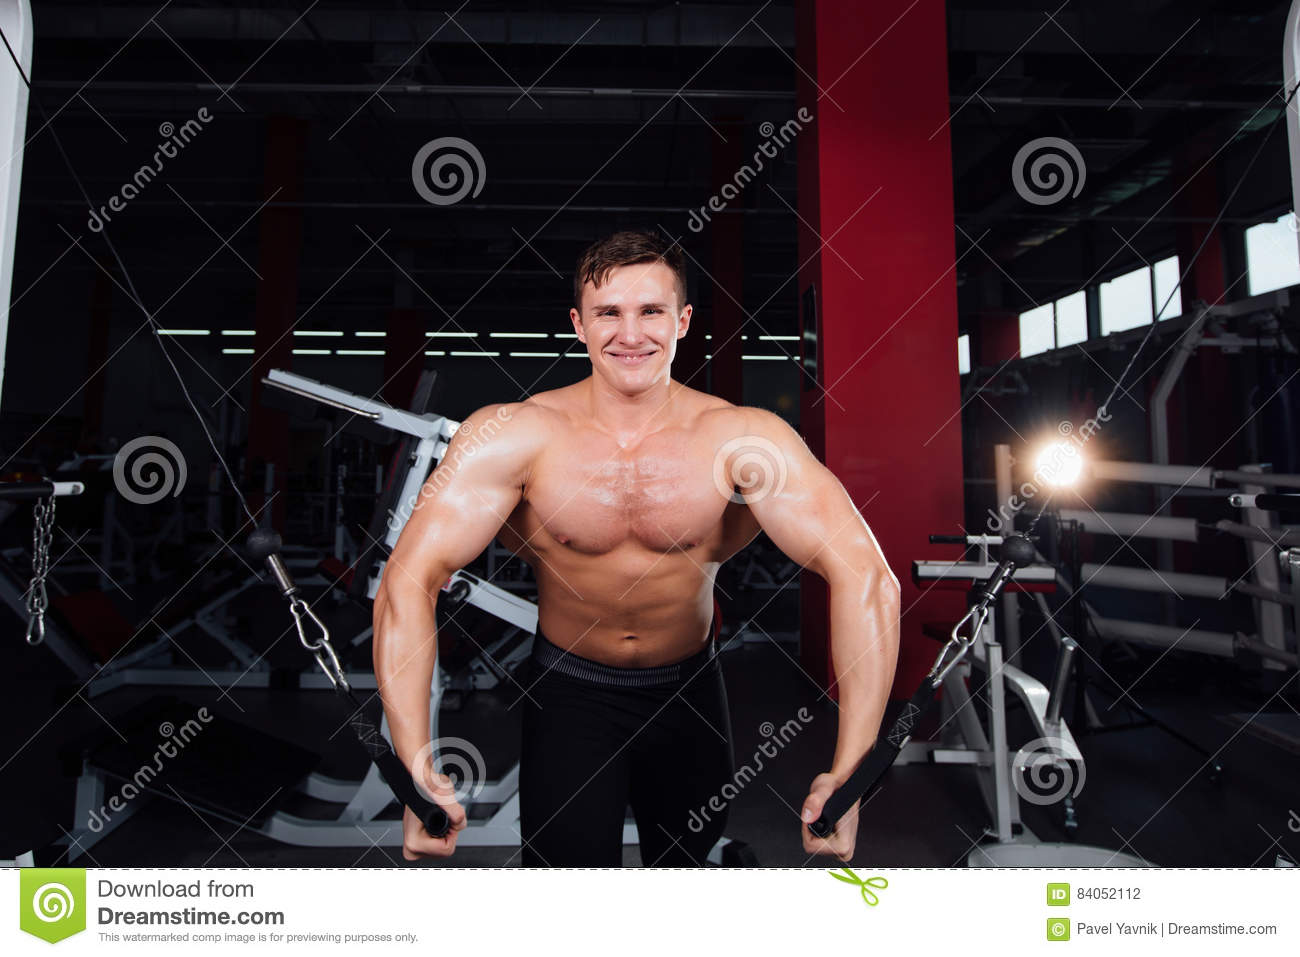 Big strong bodybuider without shirts demonstrate crossover exercises. The pectoral muscles and hard training